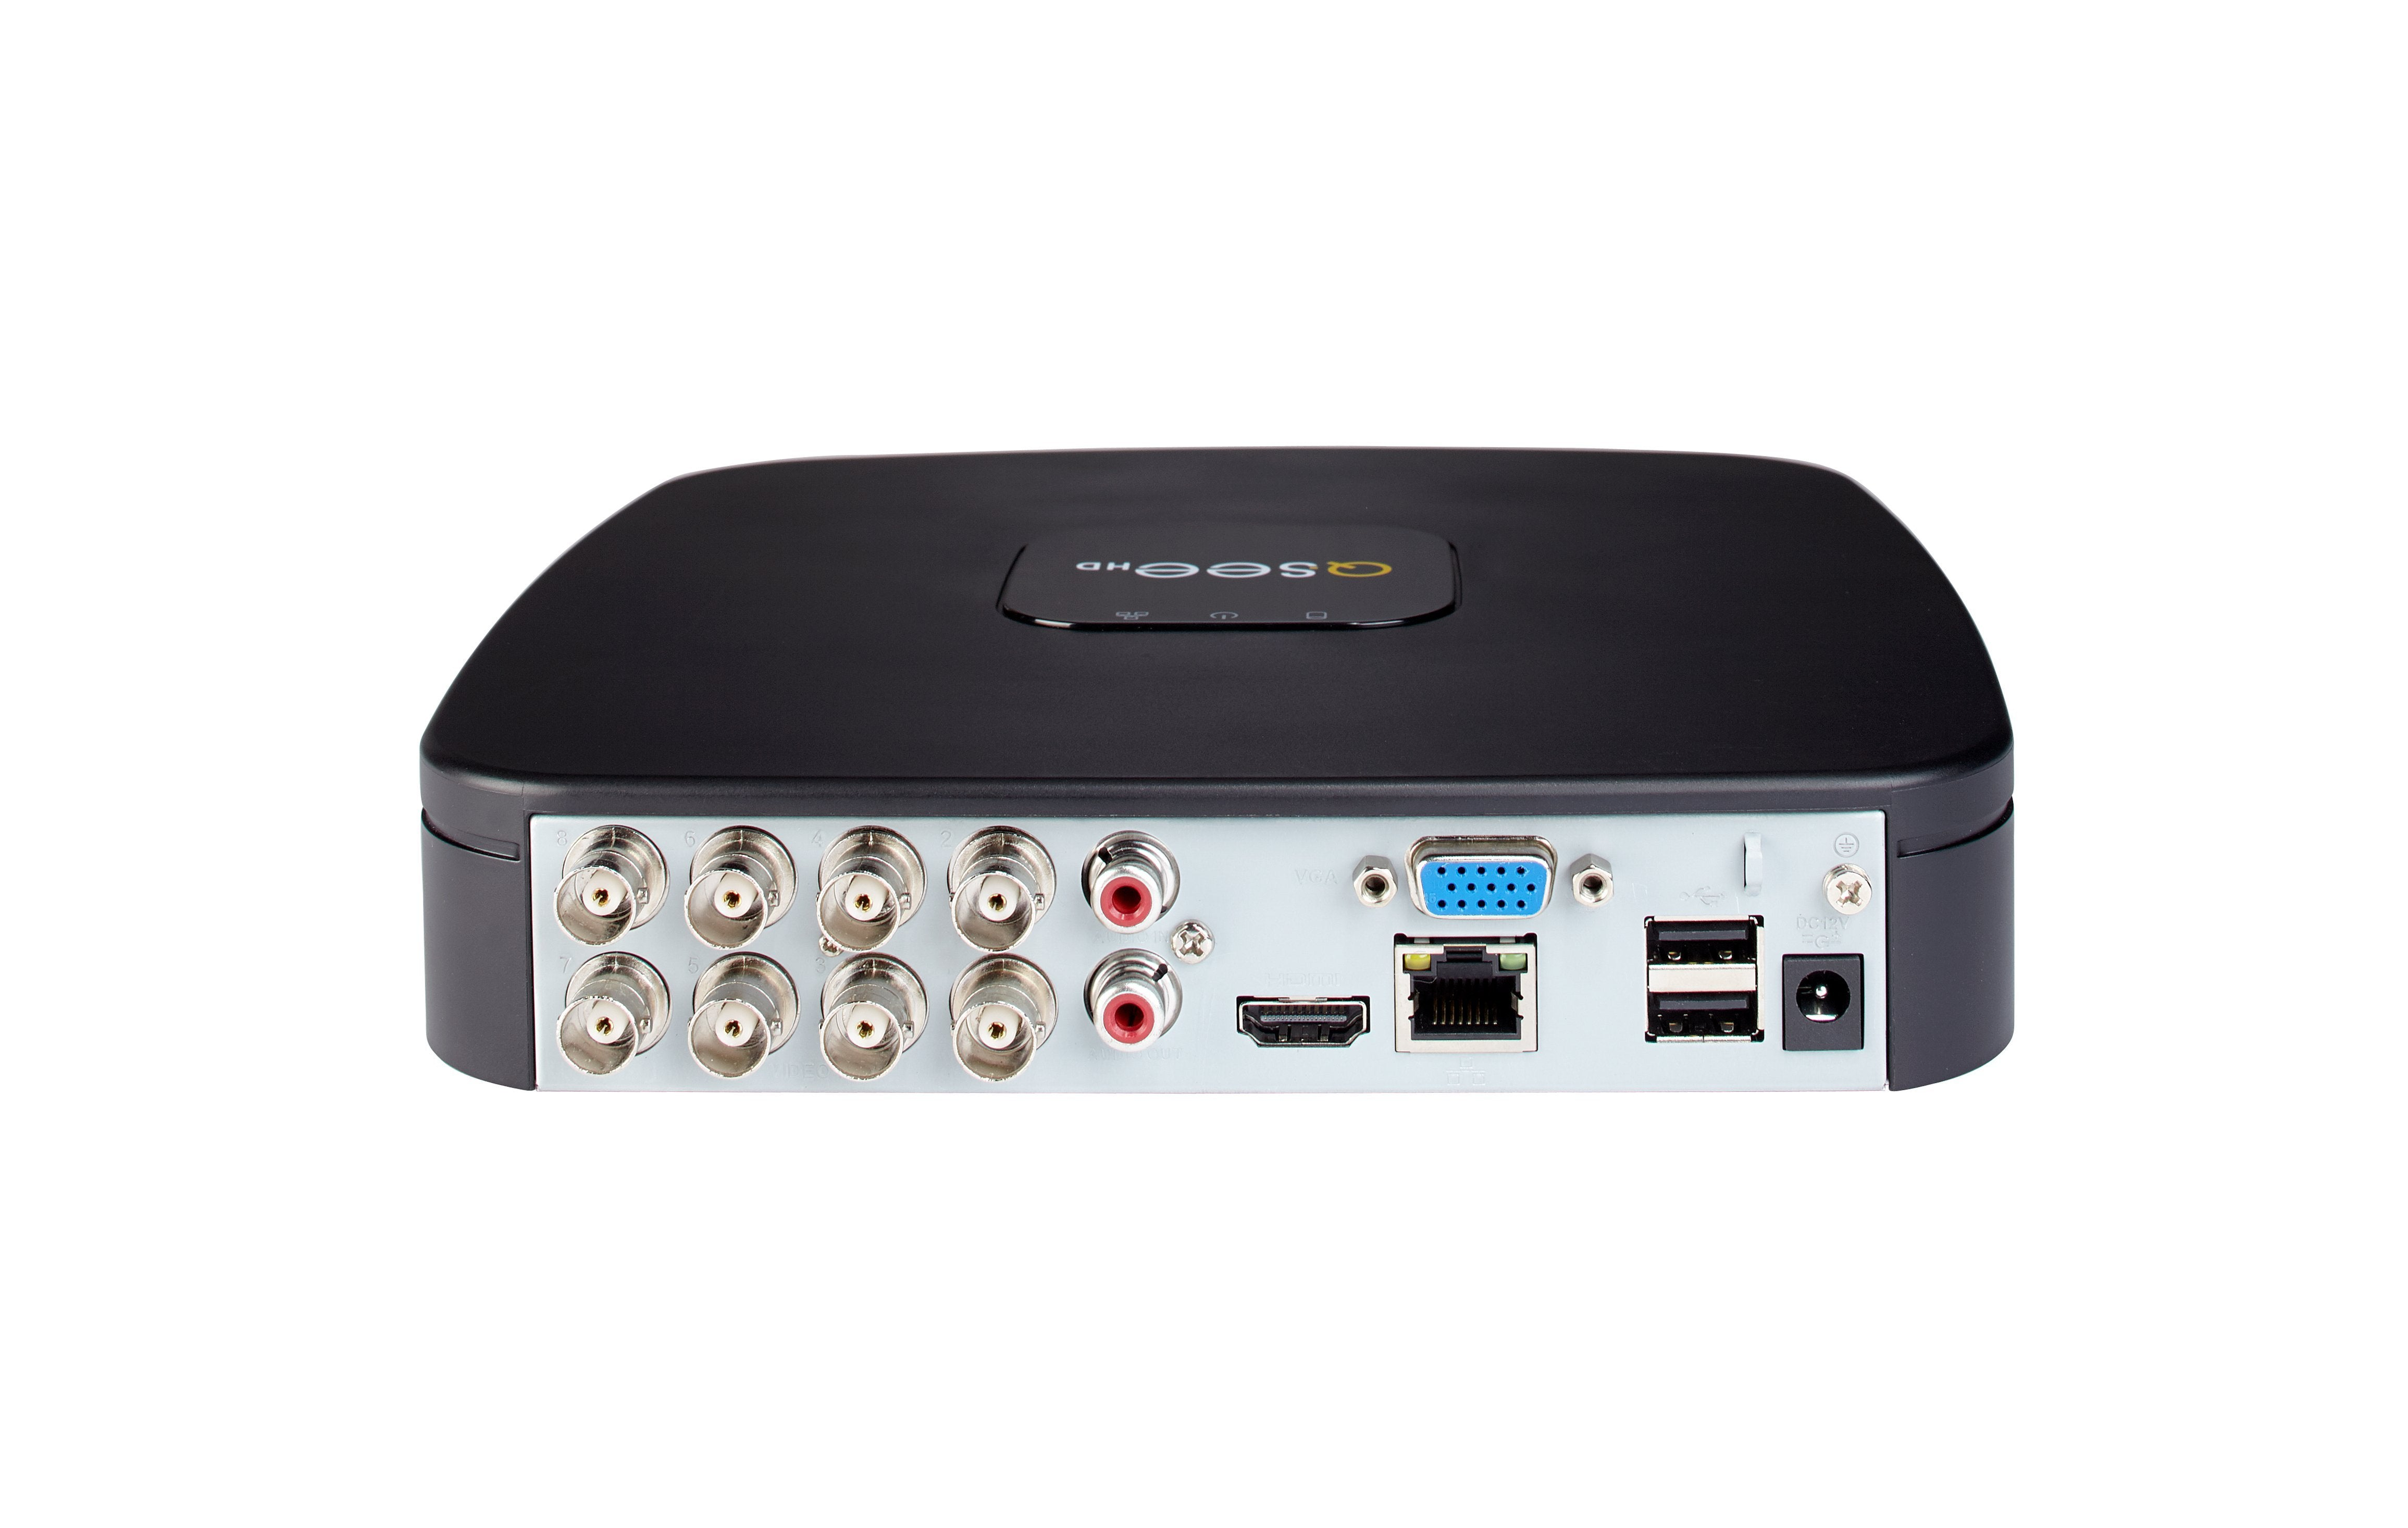 8 Channel Analog HD 1080p DVR with PIR Camera Support and Pre-Installed 1TB Hard Drive (QC918B-1) ANALOG HD  - Q-See